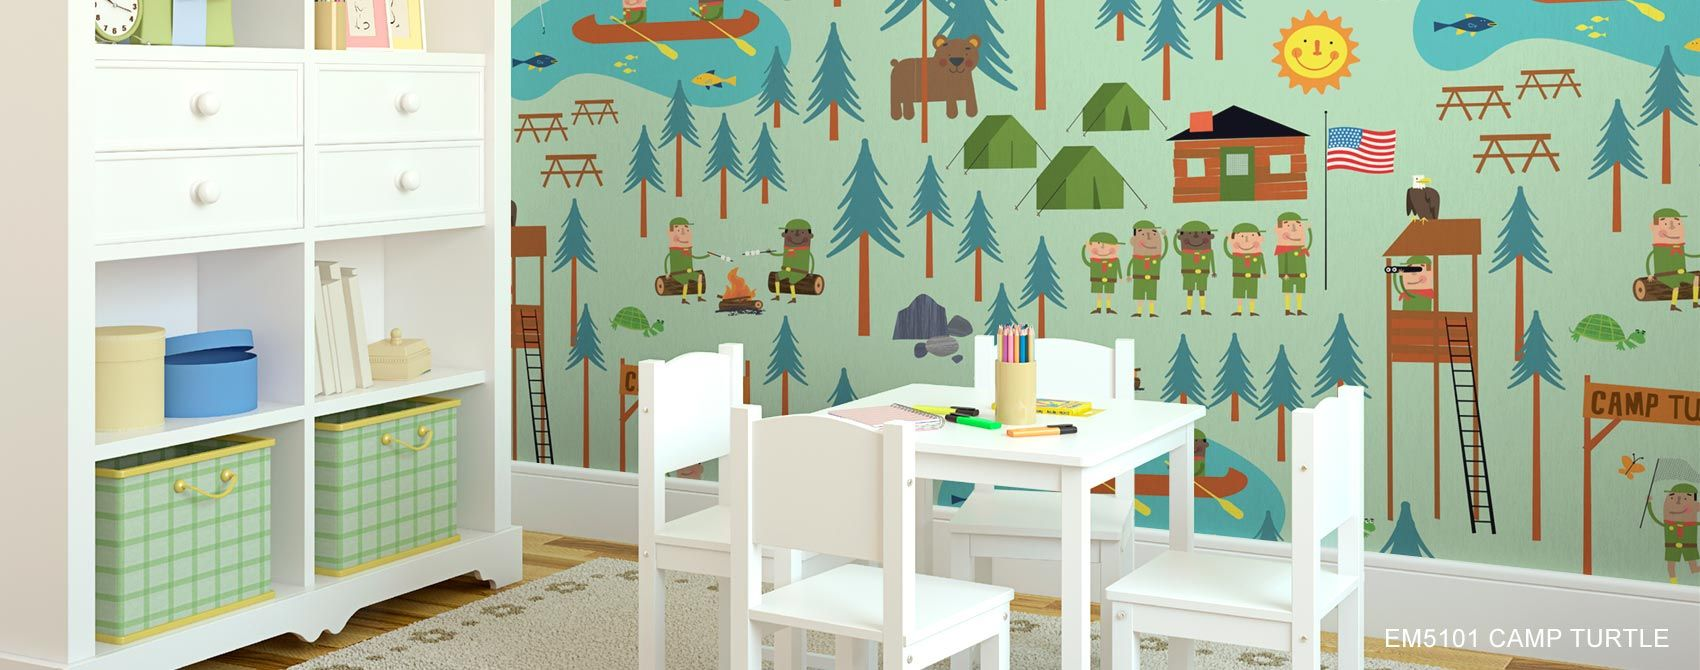 Download wallpaper for kids rooms gallery for Wallpaper for kids rooms